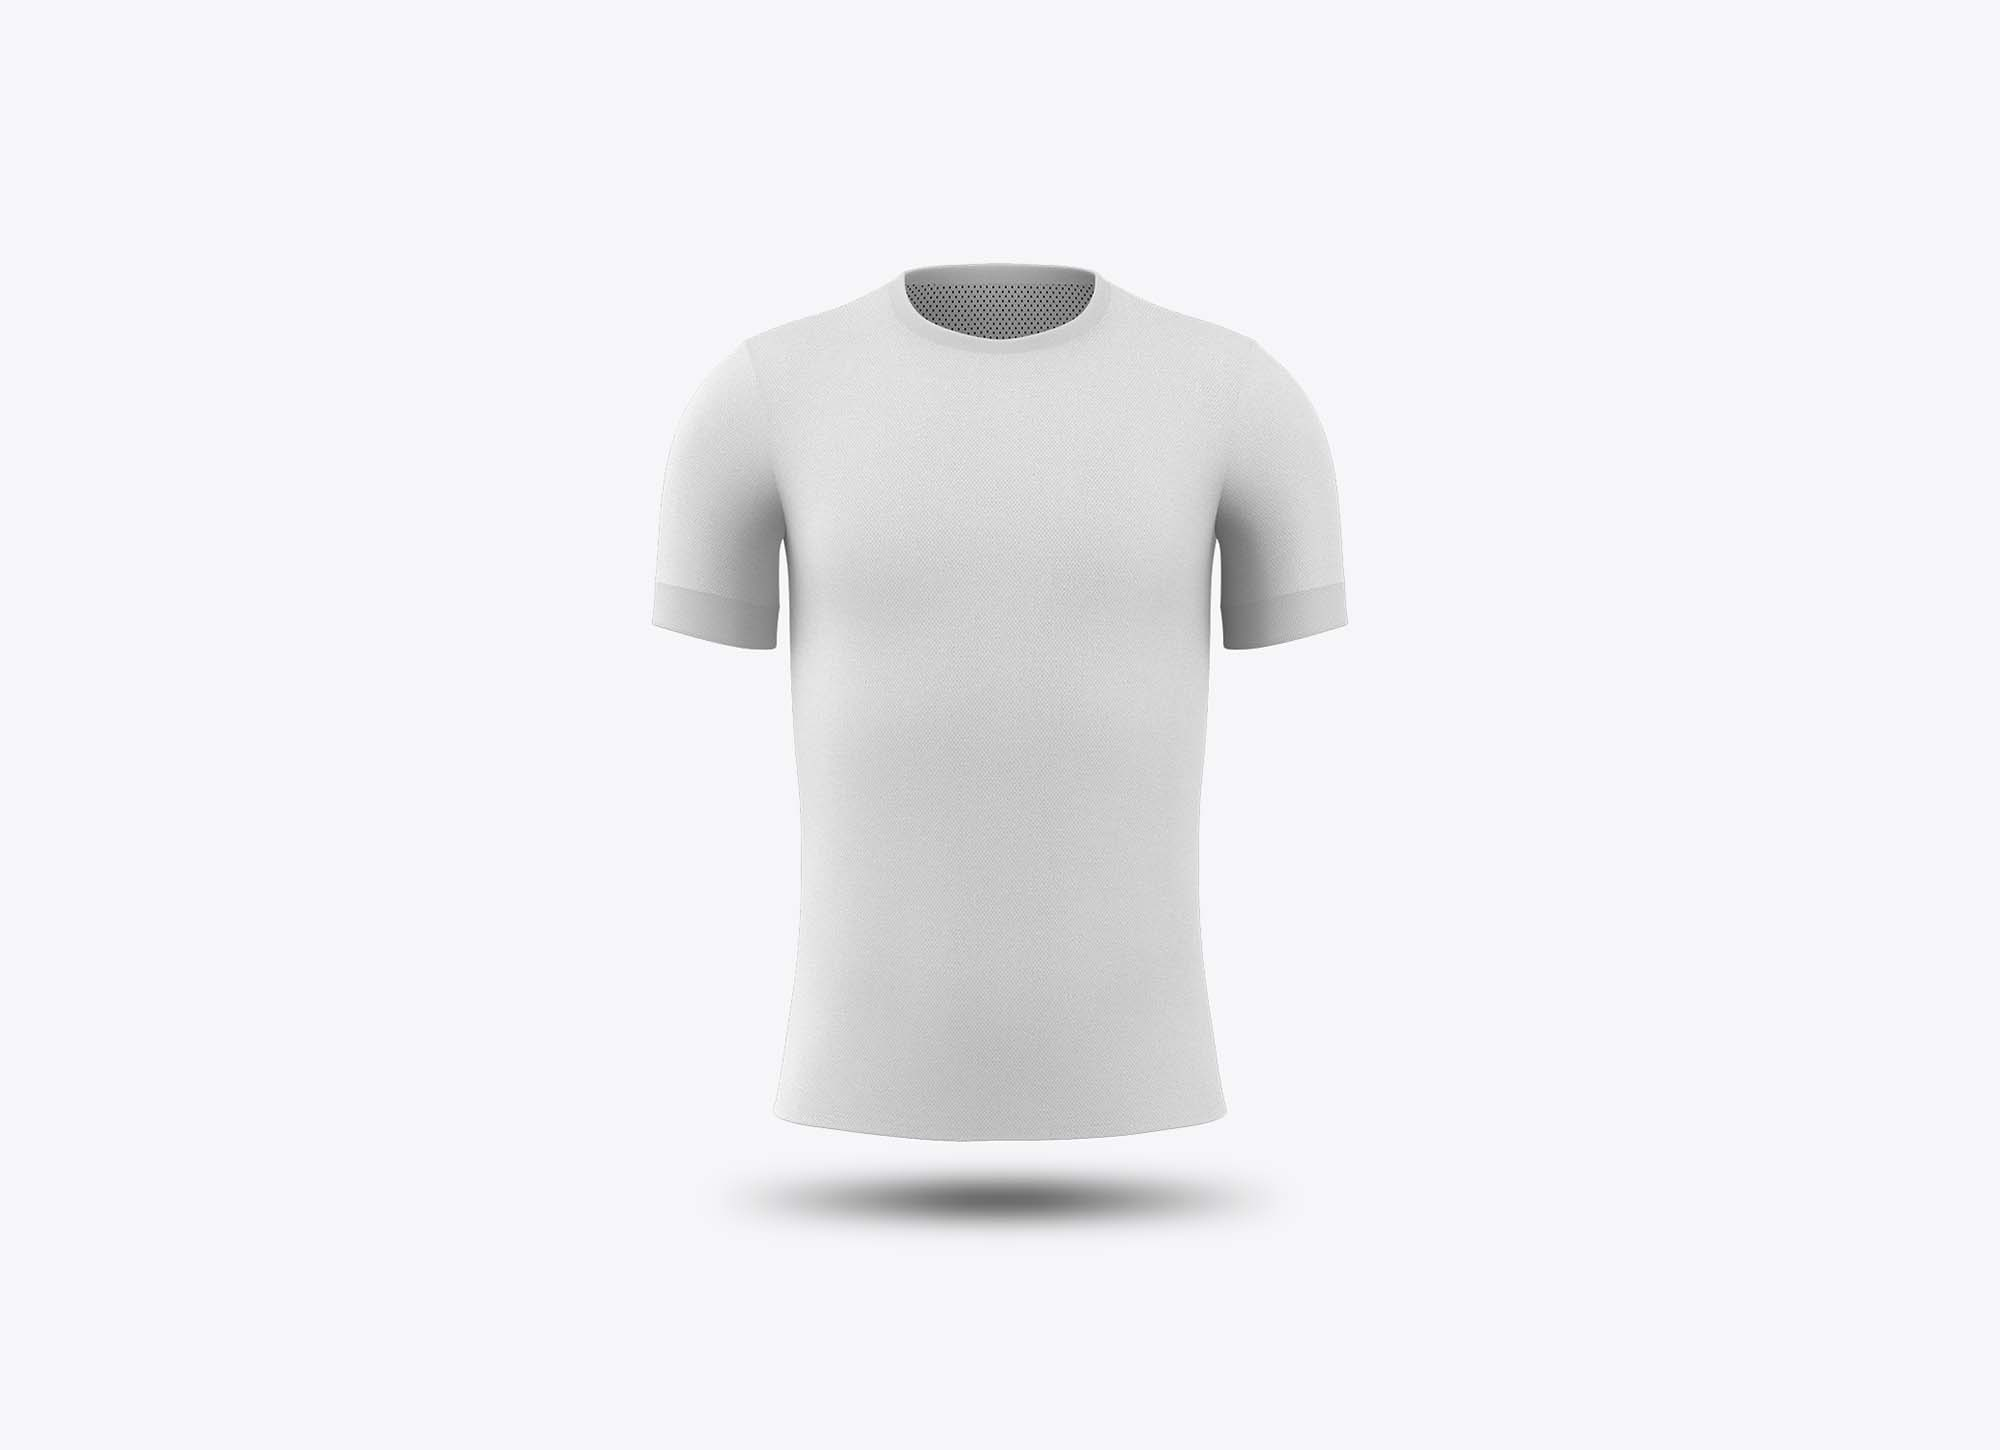 Download Free Soccer Jersey Mockup (PSD)